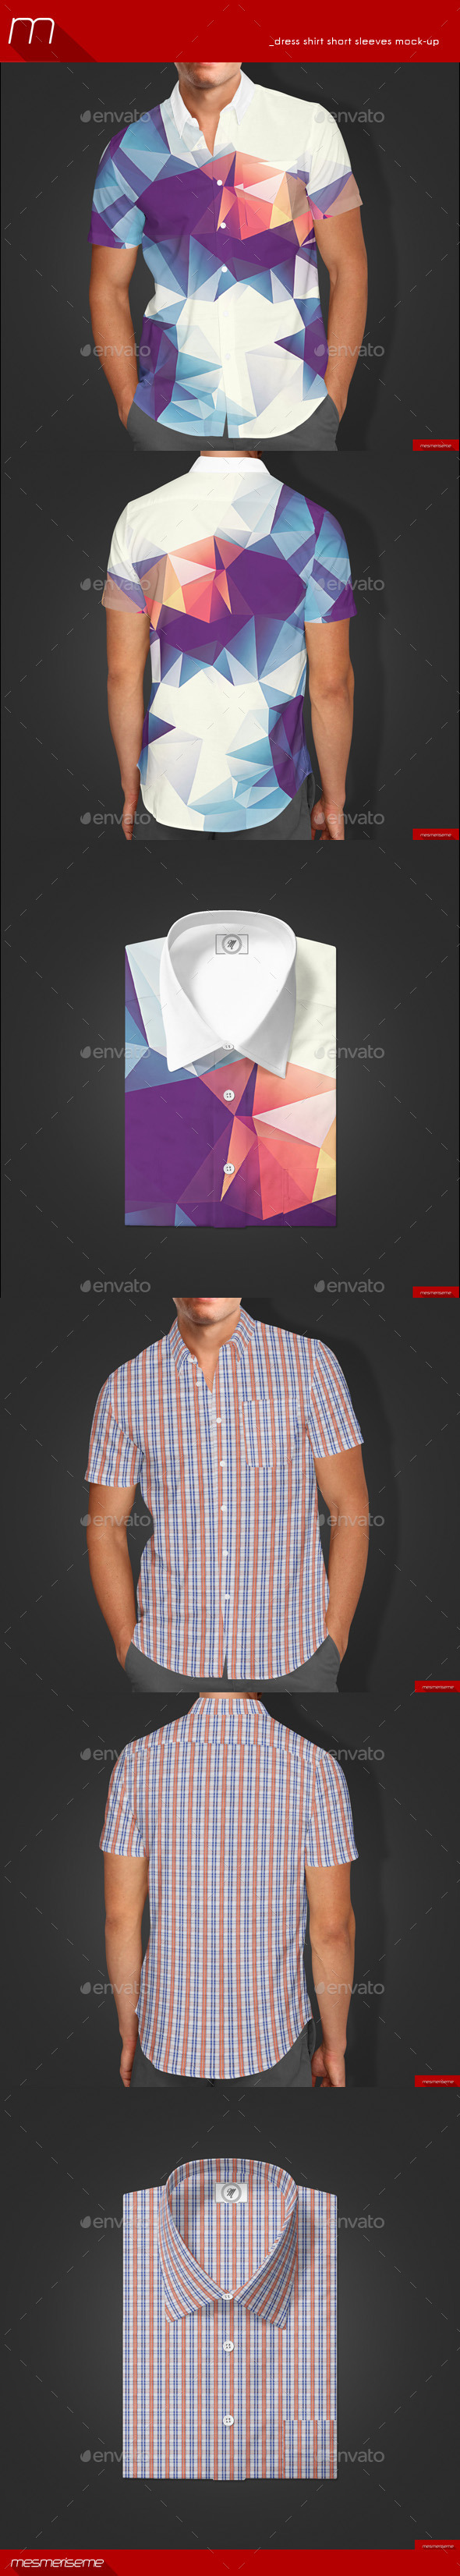 GraphicRiver Short Sleeves Dress Shirt Mock-up 9942183